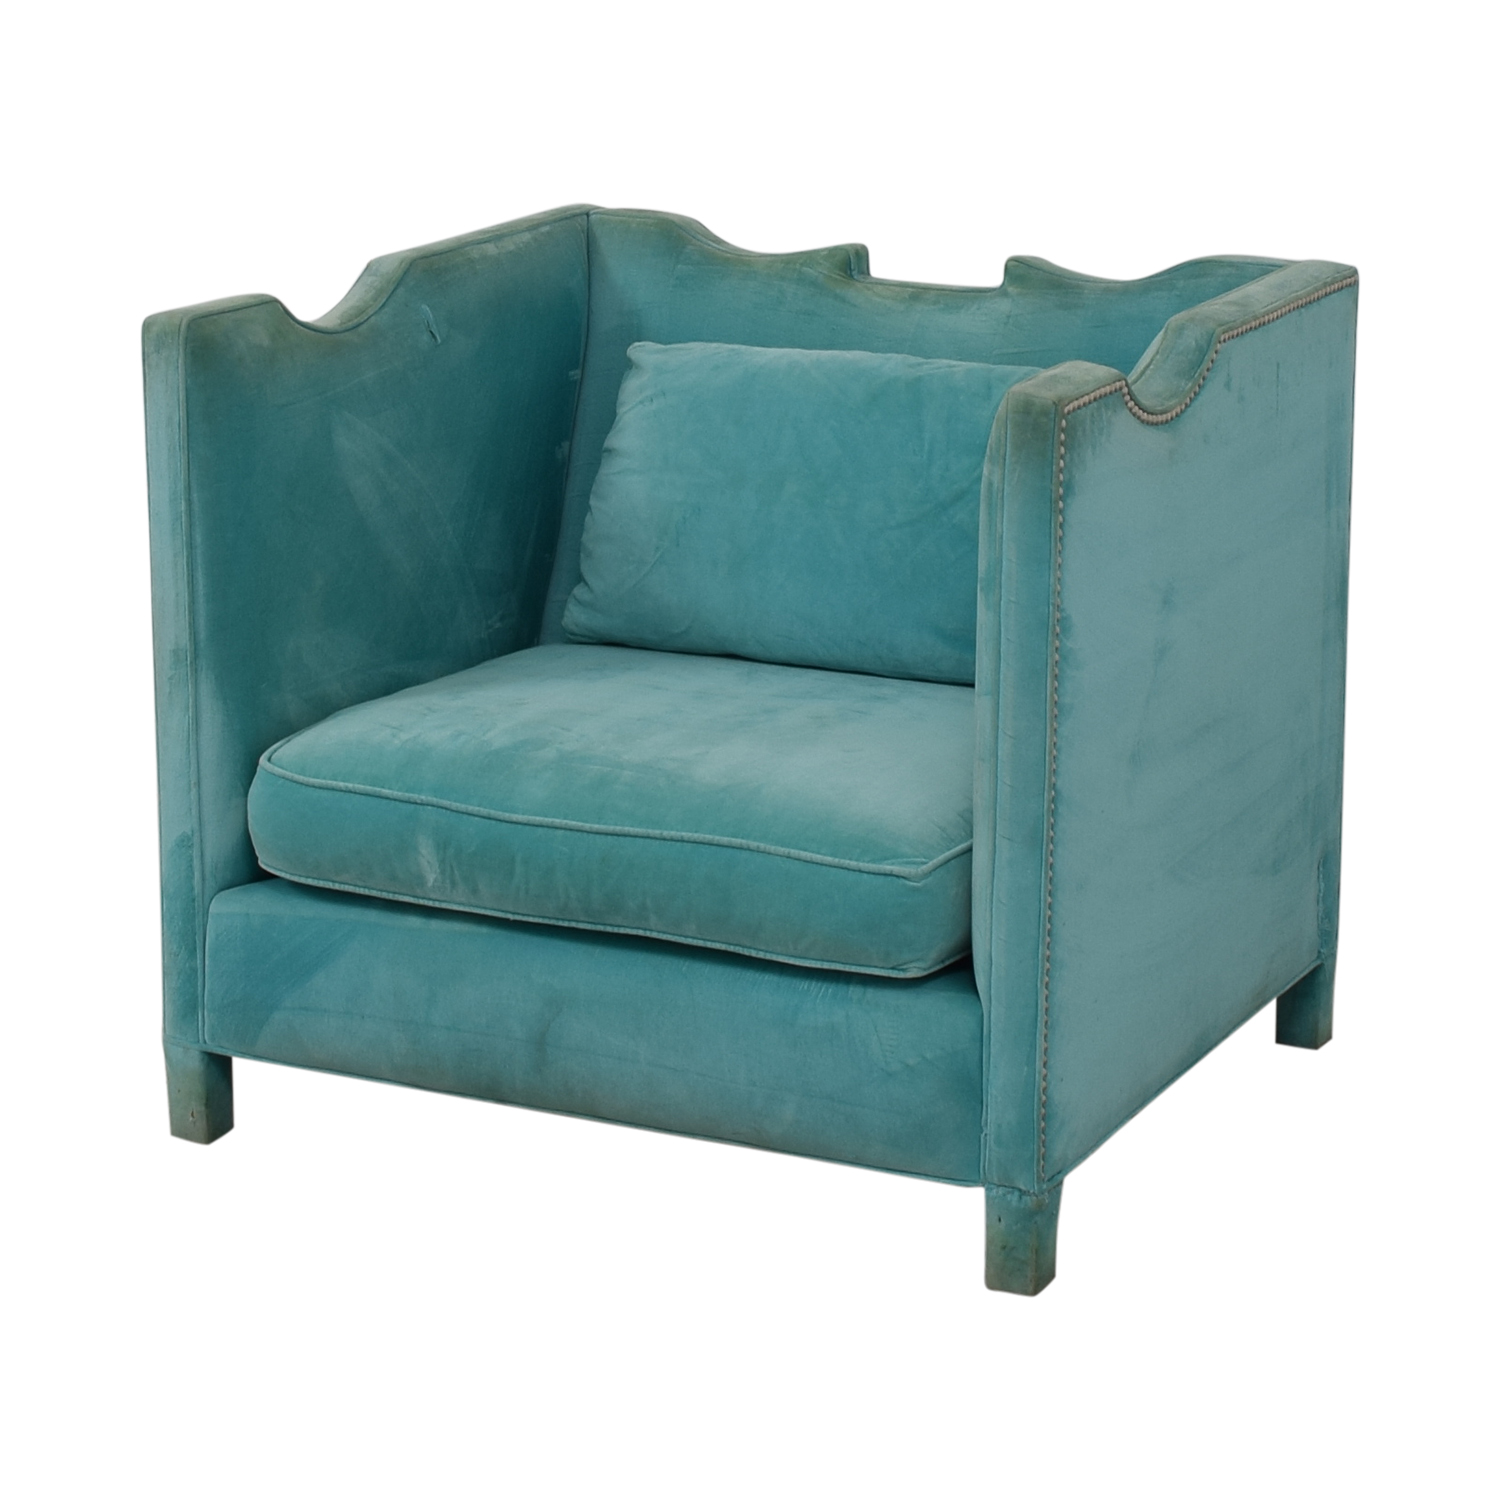 Shine by S.H.O Shine by S.H.O Limoge Chair Cotton Velvet with Polished Nickel Studs nj